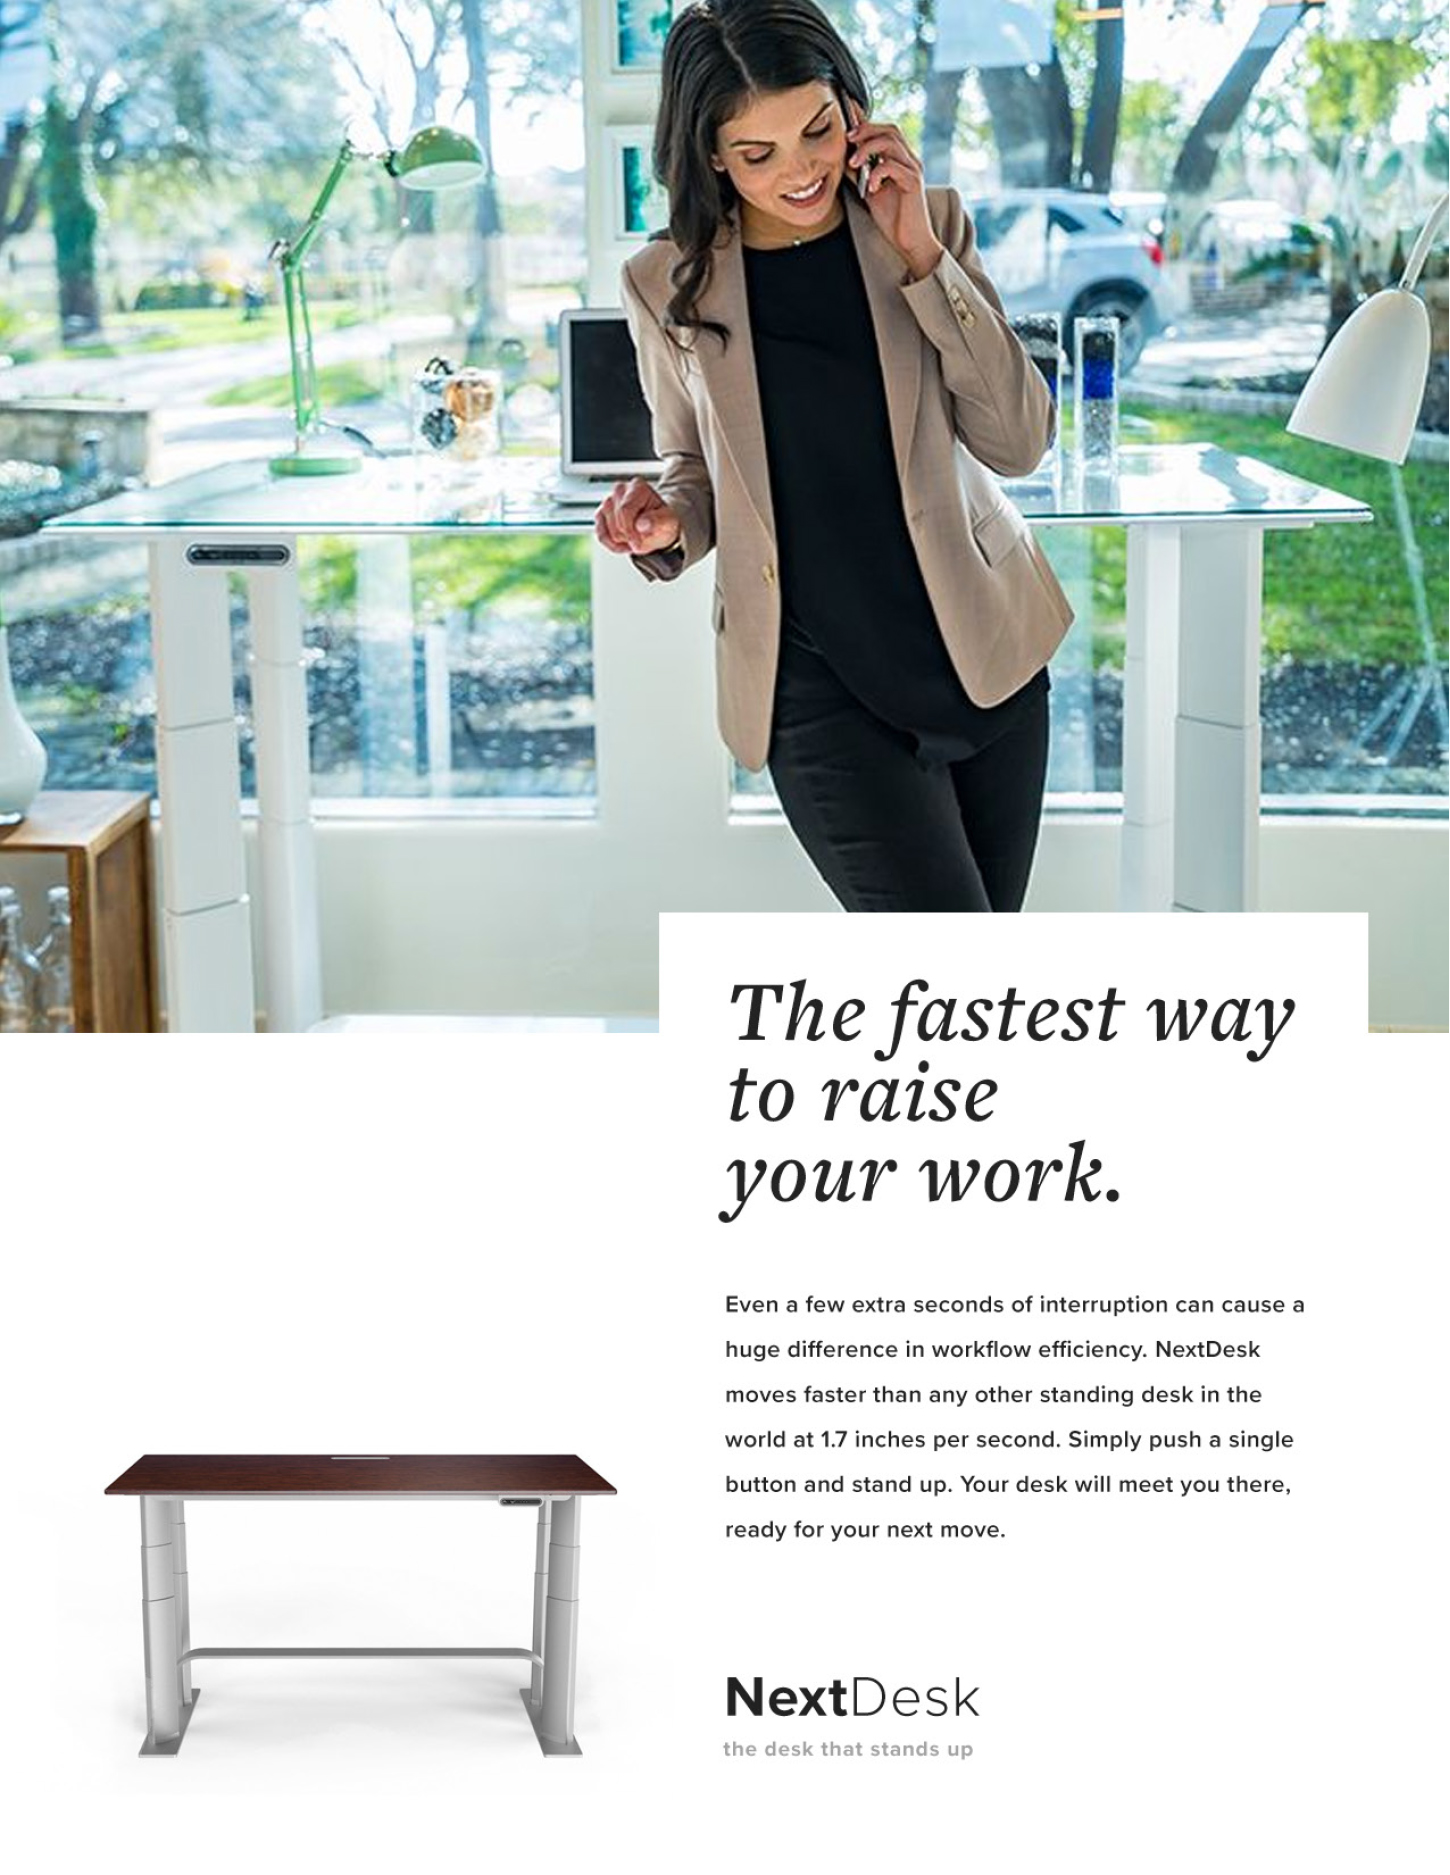 The fastest way to raise your work. - Even a few extra seconds of interruption can cause a huge difference in workflow efficiency. NextDesk moves faster than any other standing desk in the world at 1.7 inches per second. Simply push a single button and stand up. Your desk will meet you there, ready for your next move.